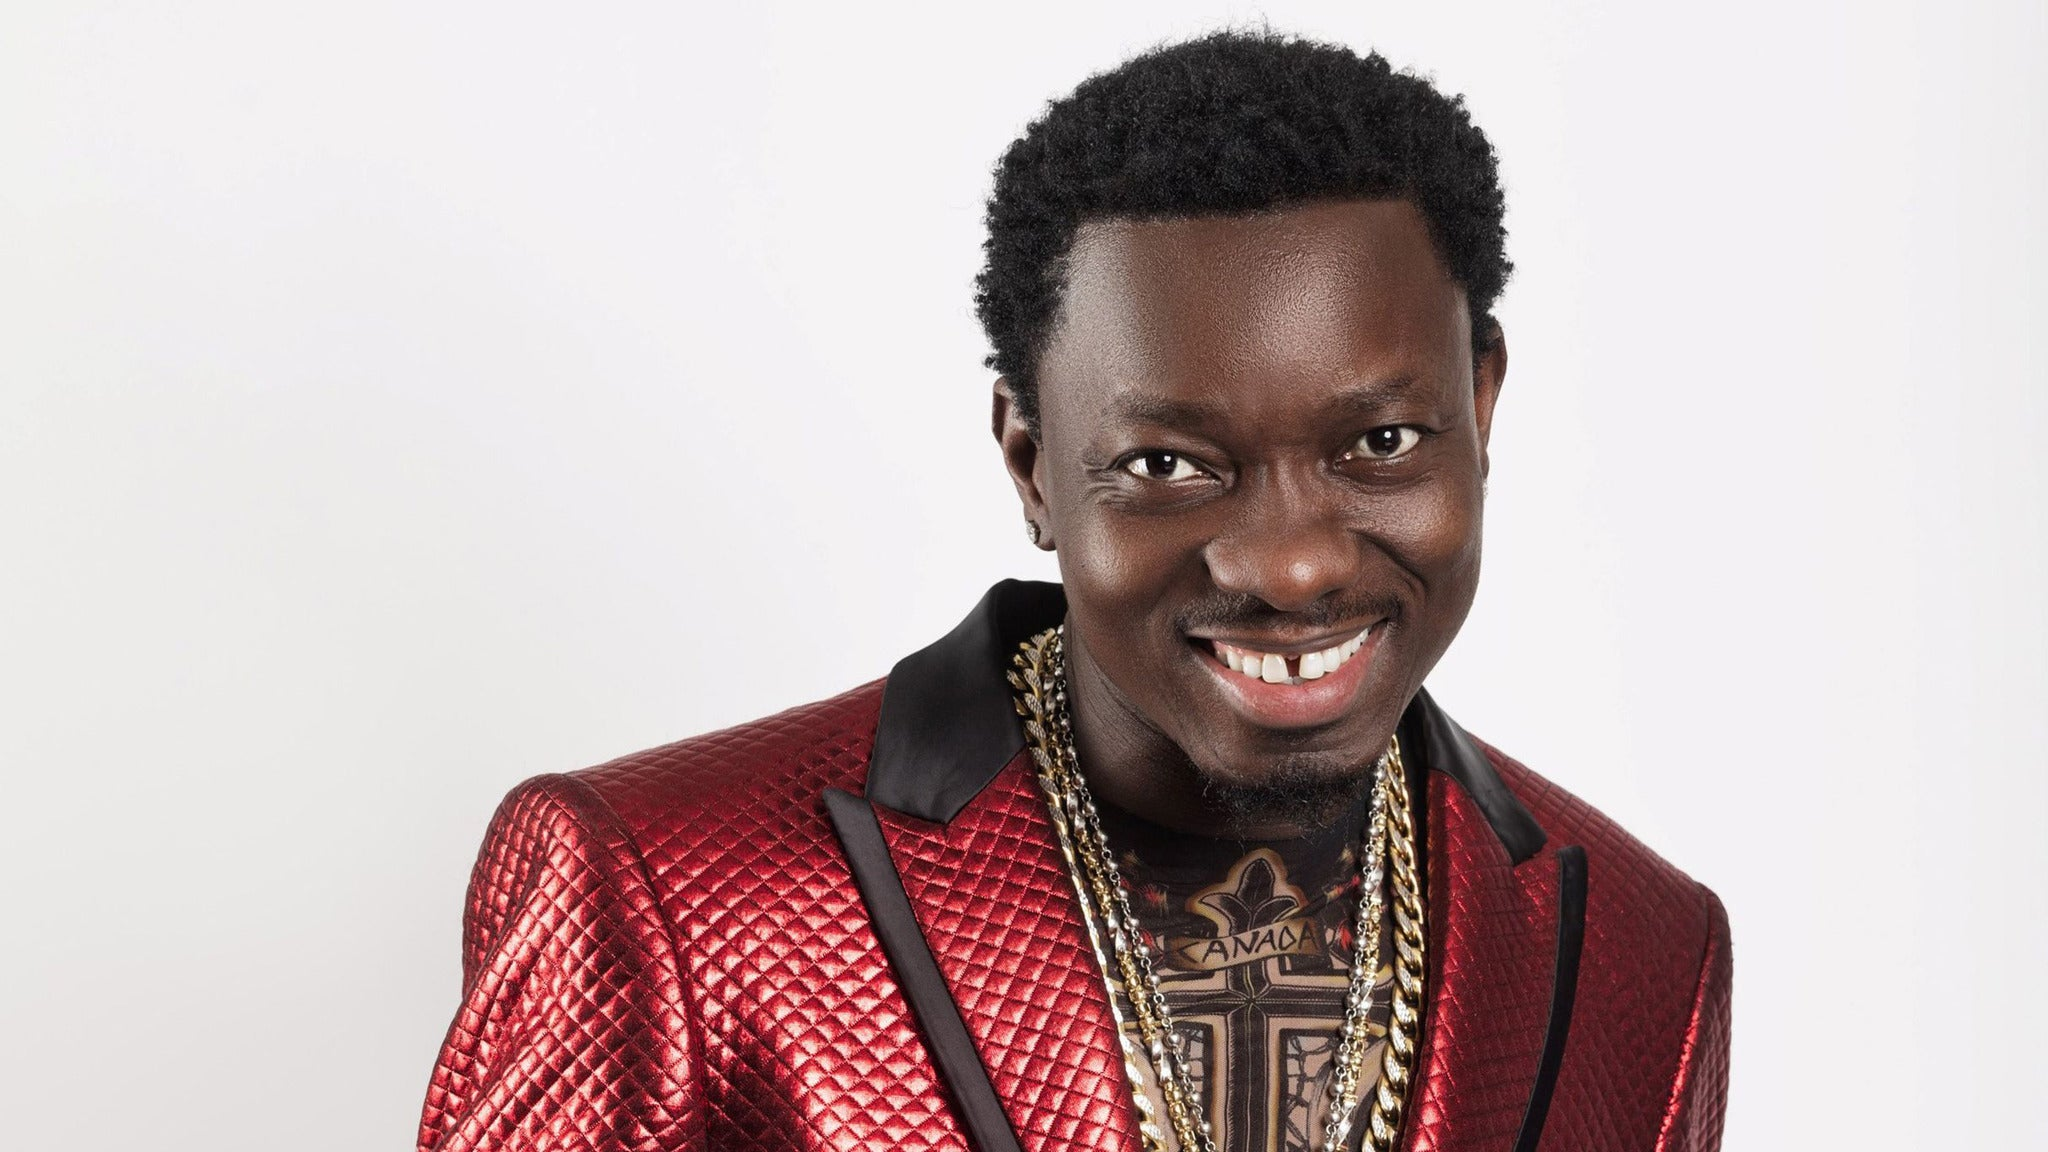 Michael Blackson at Albany Municipal Auditorium